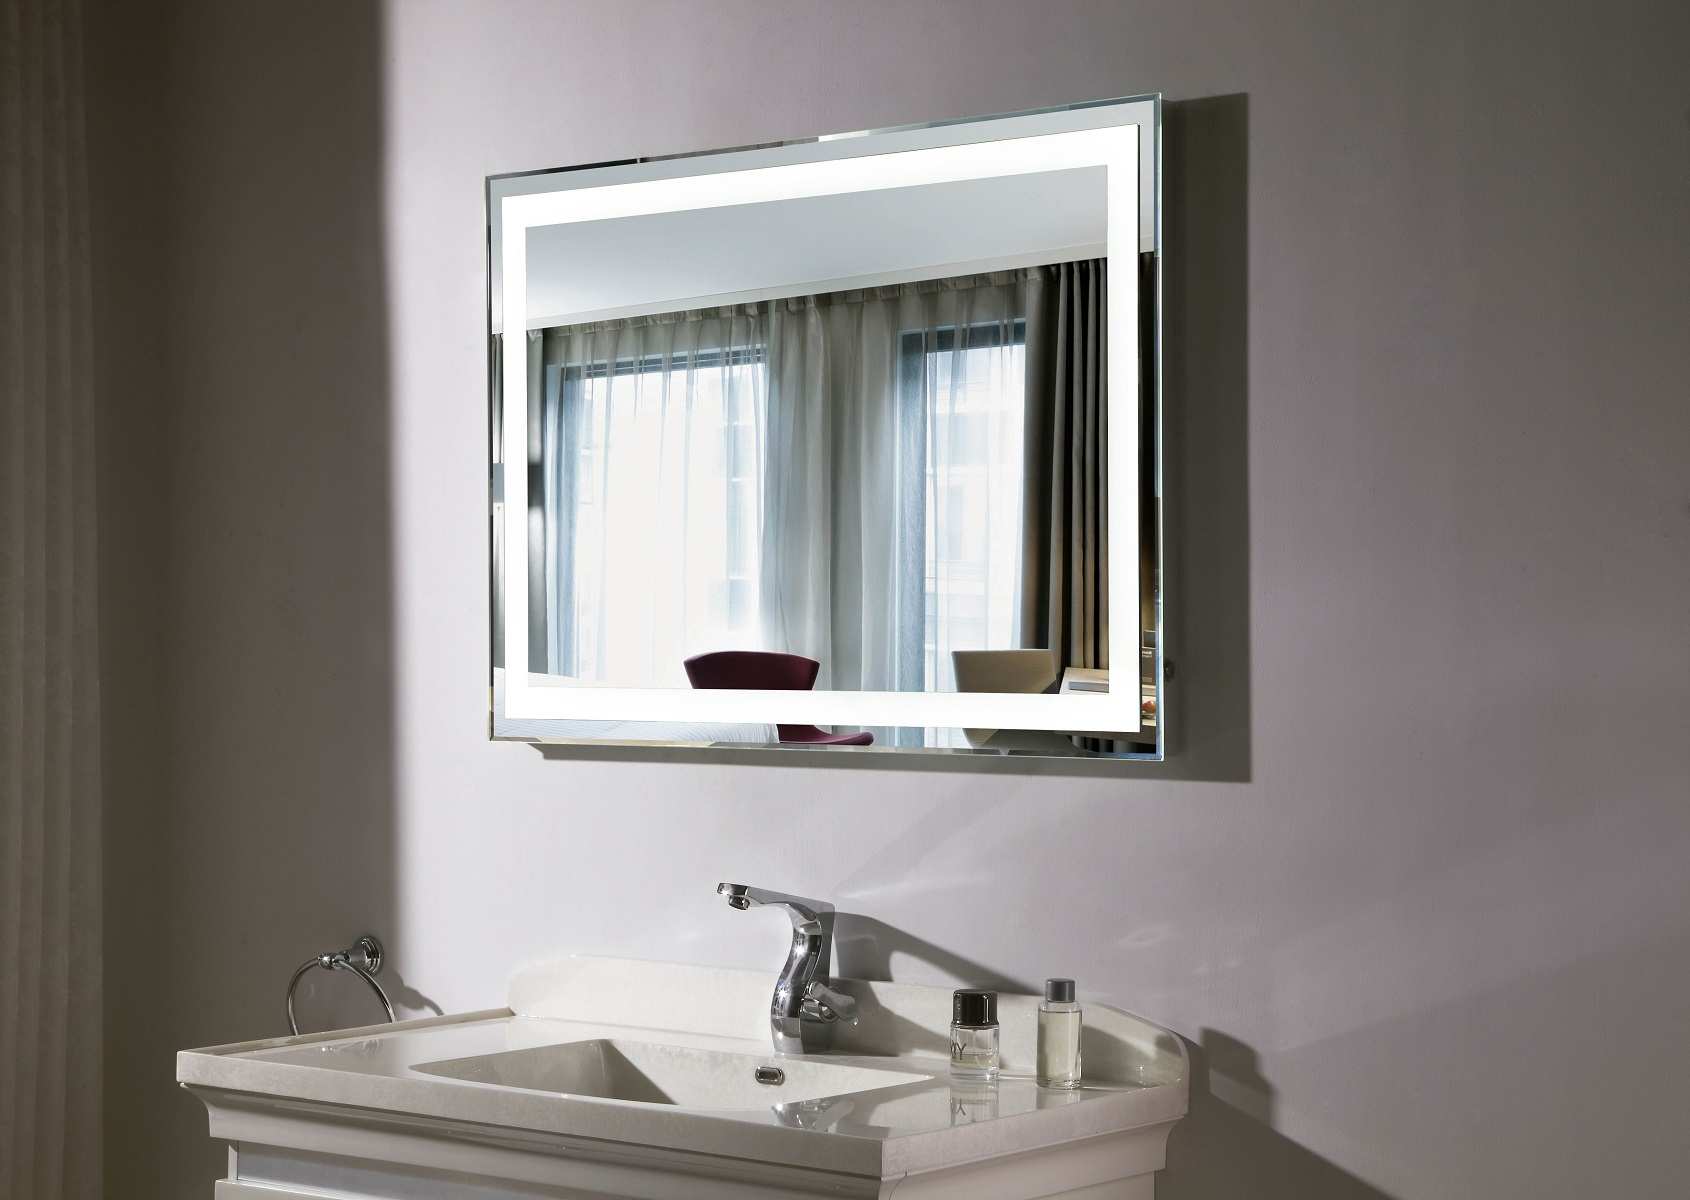 Vanity Mirrors For Bathroom The Interior Gallery